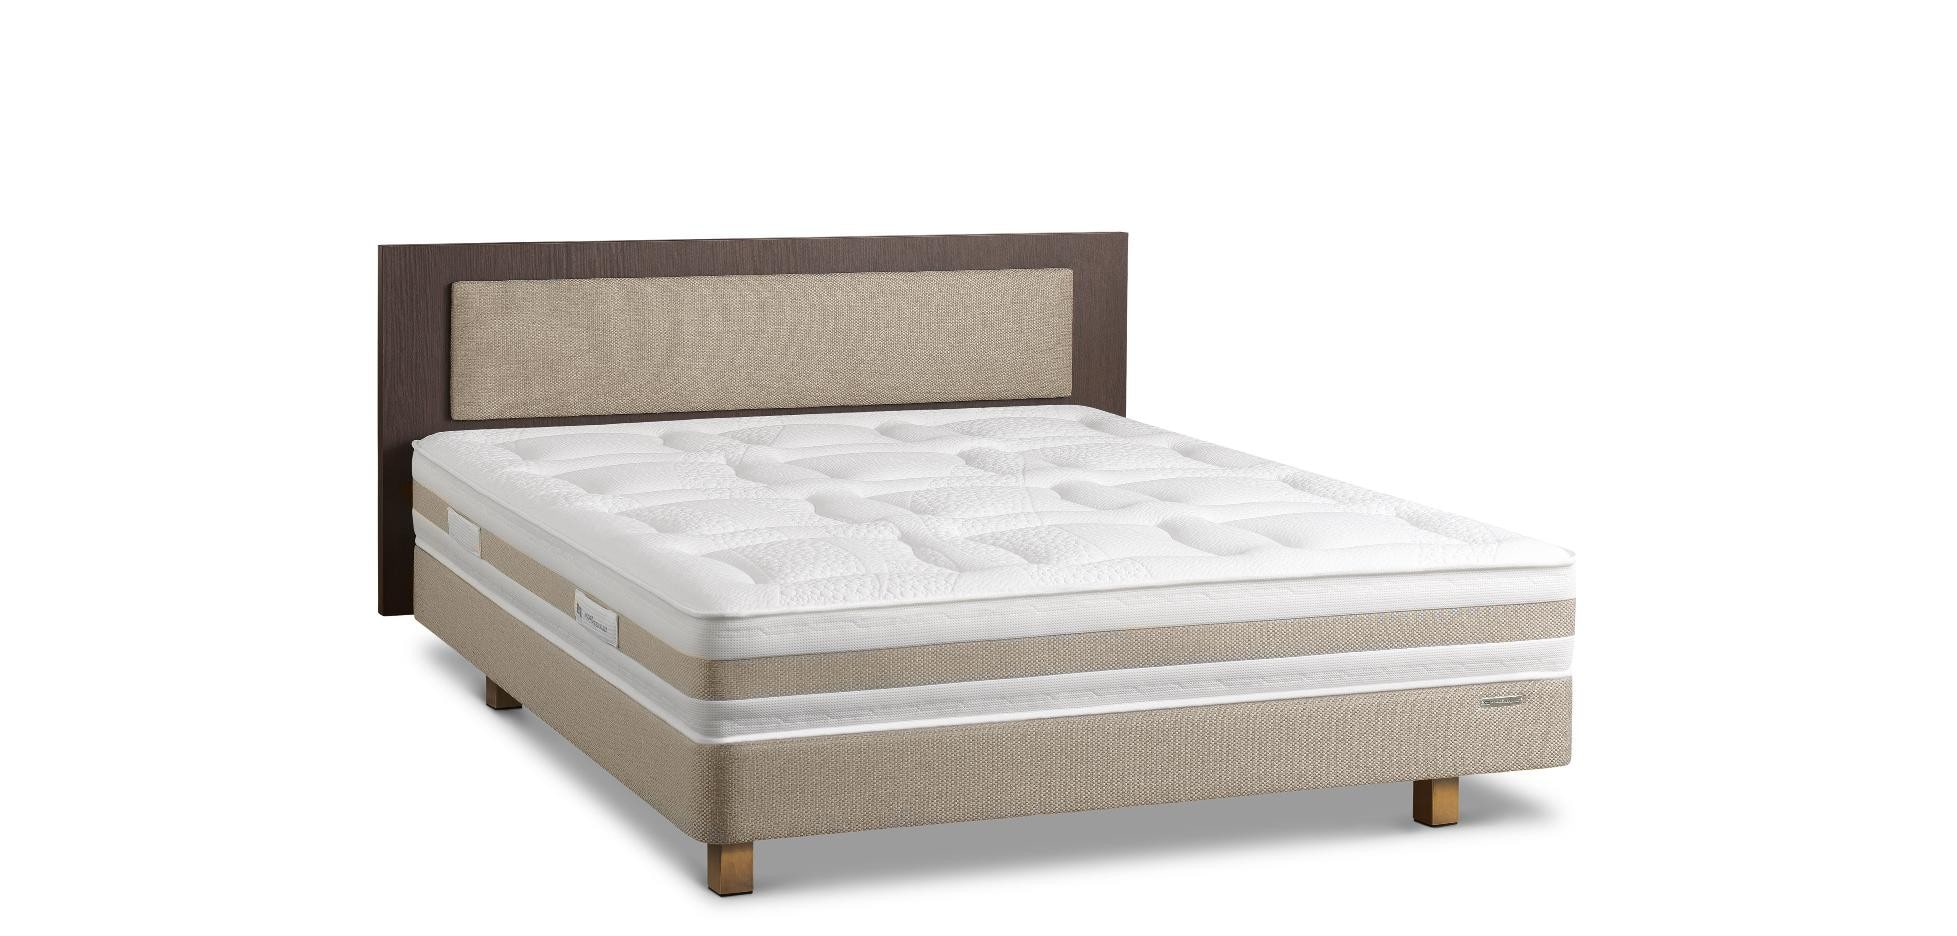 matelas sommiers free literie production literie matelas sommiers de marque matelas matelas sur. Black Bedroom Furniture Sets. Home Design Ideas